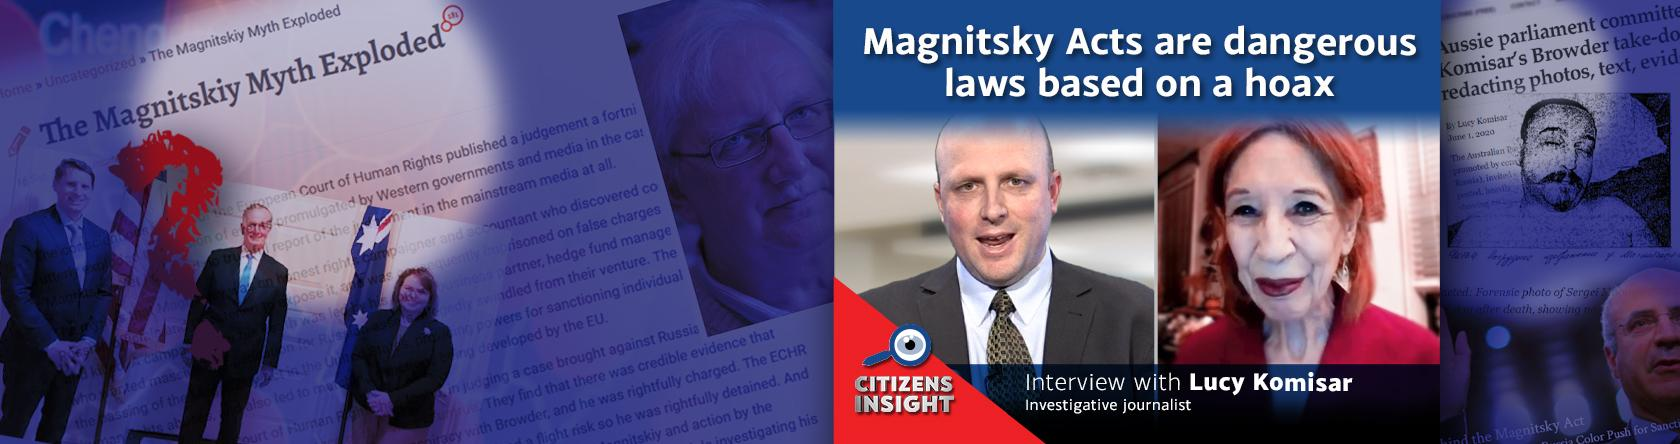 CITIZENS INSIGHT - Magnitsky Acts are dangerous laws based on a hoax – Interview with Investigative Journalist, Lucy Komisar